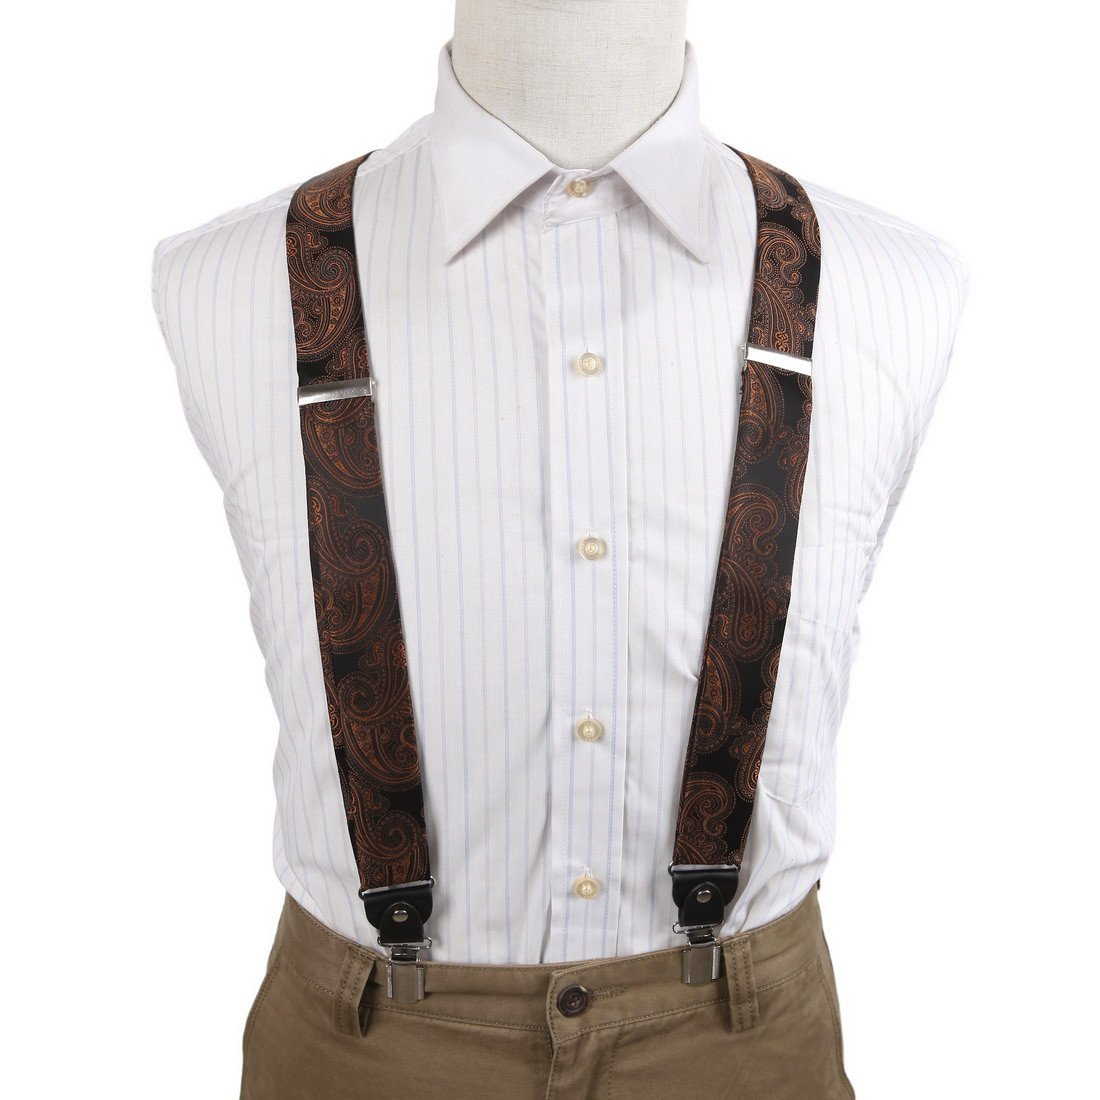 EFBB0045 Brown Patterned Extendable Microfiber Y-Back Suspenders Stainless Steel Clip Elegant Gift Giving By Epoint by Epoint (Image #2)